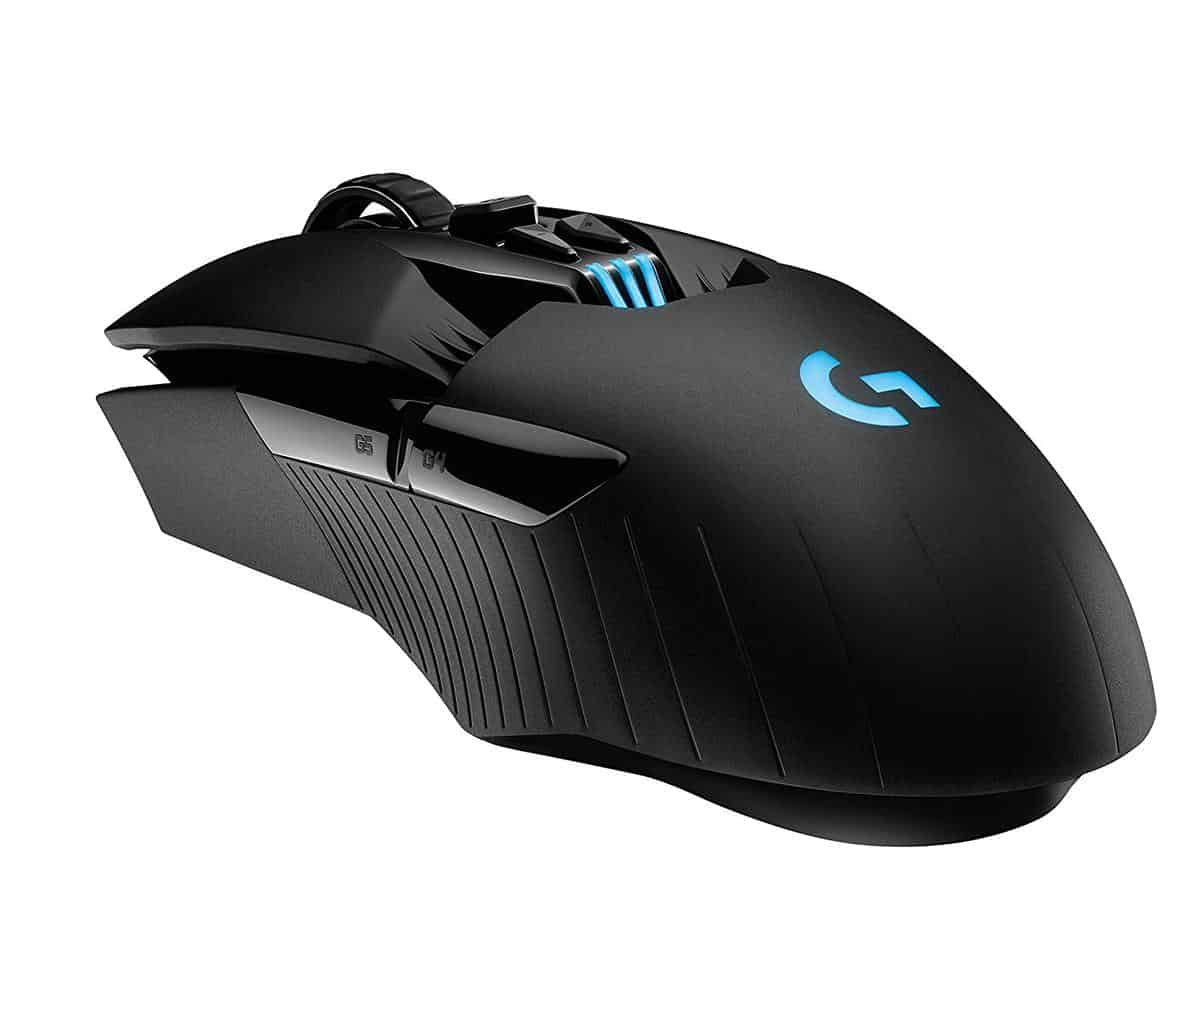 Best Wireless Left-Handed Gaming Mouse